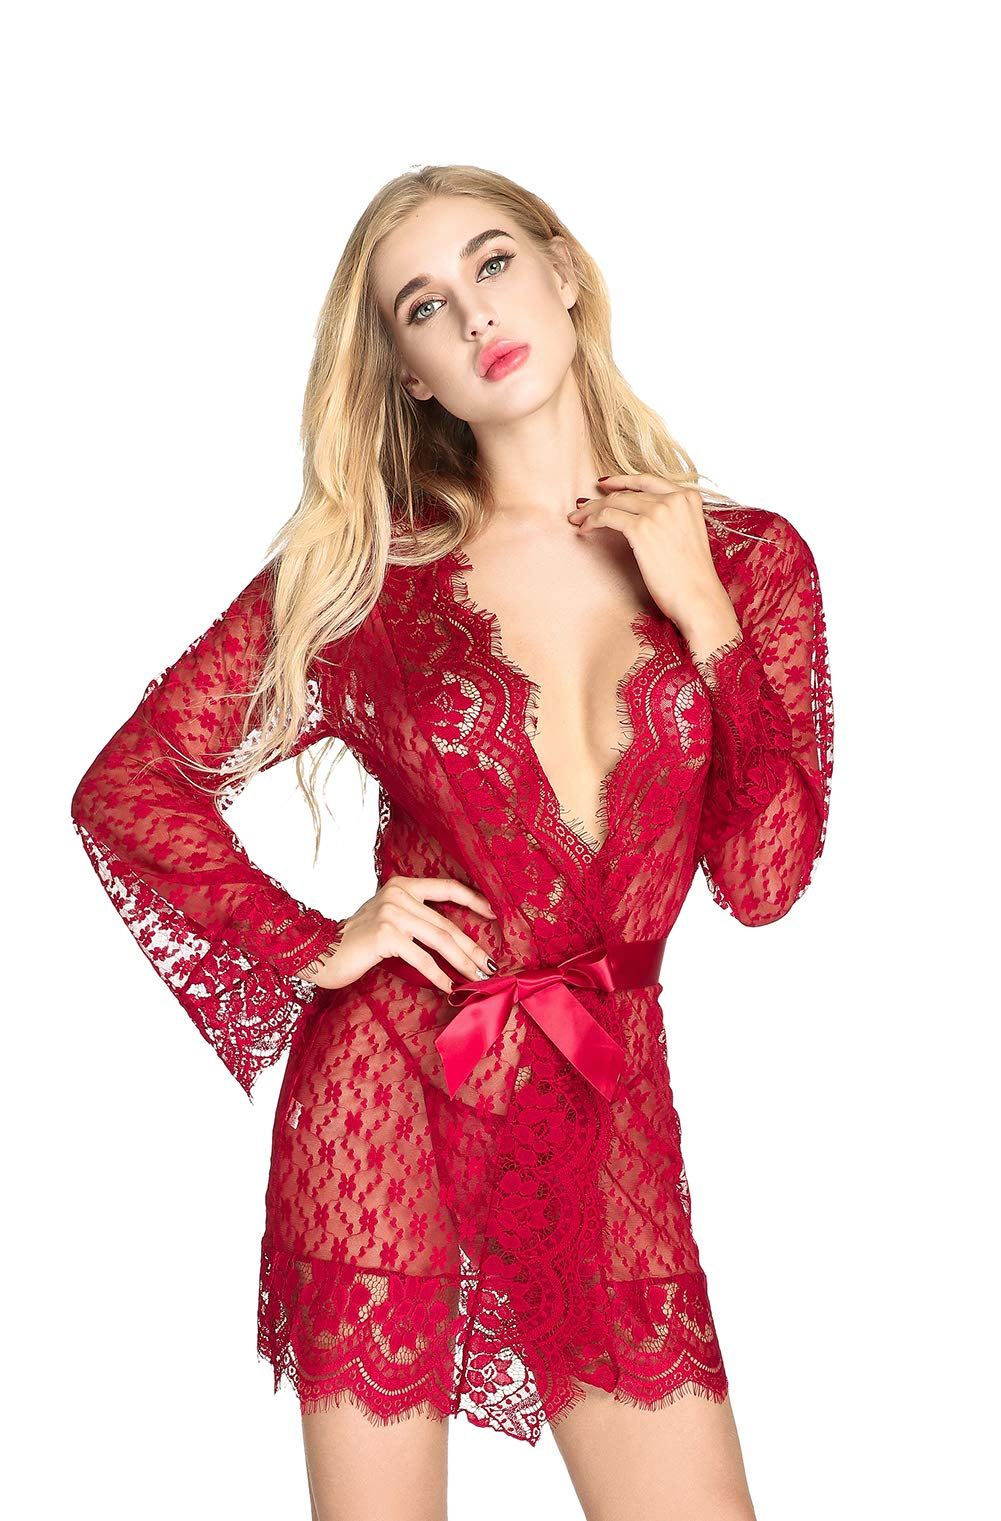 QUEEN MOON Babydolls Sexy Lingerie for Women for Sex Long Sleeve Lace Lingerie Set Exotic Lingerie Robe